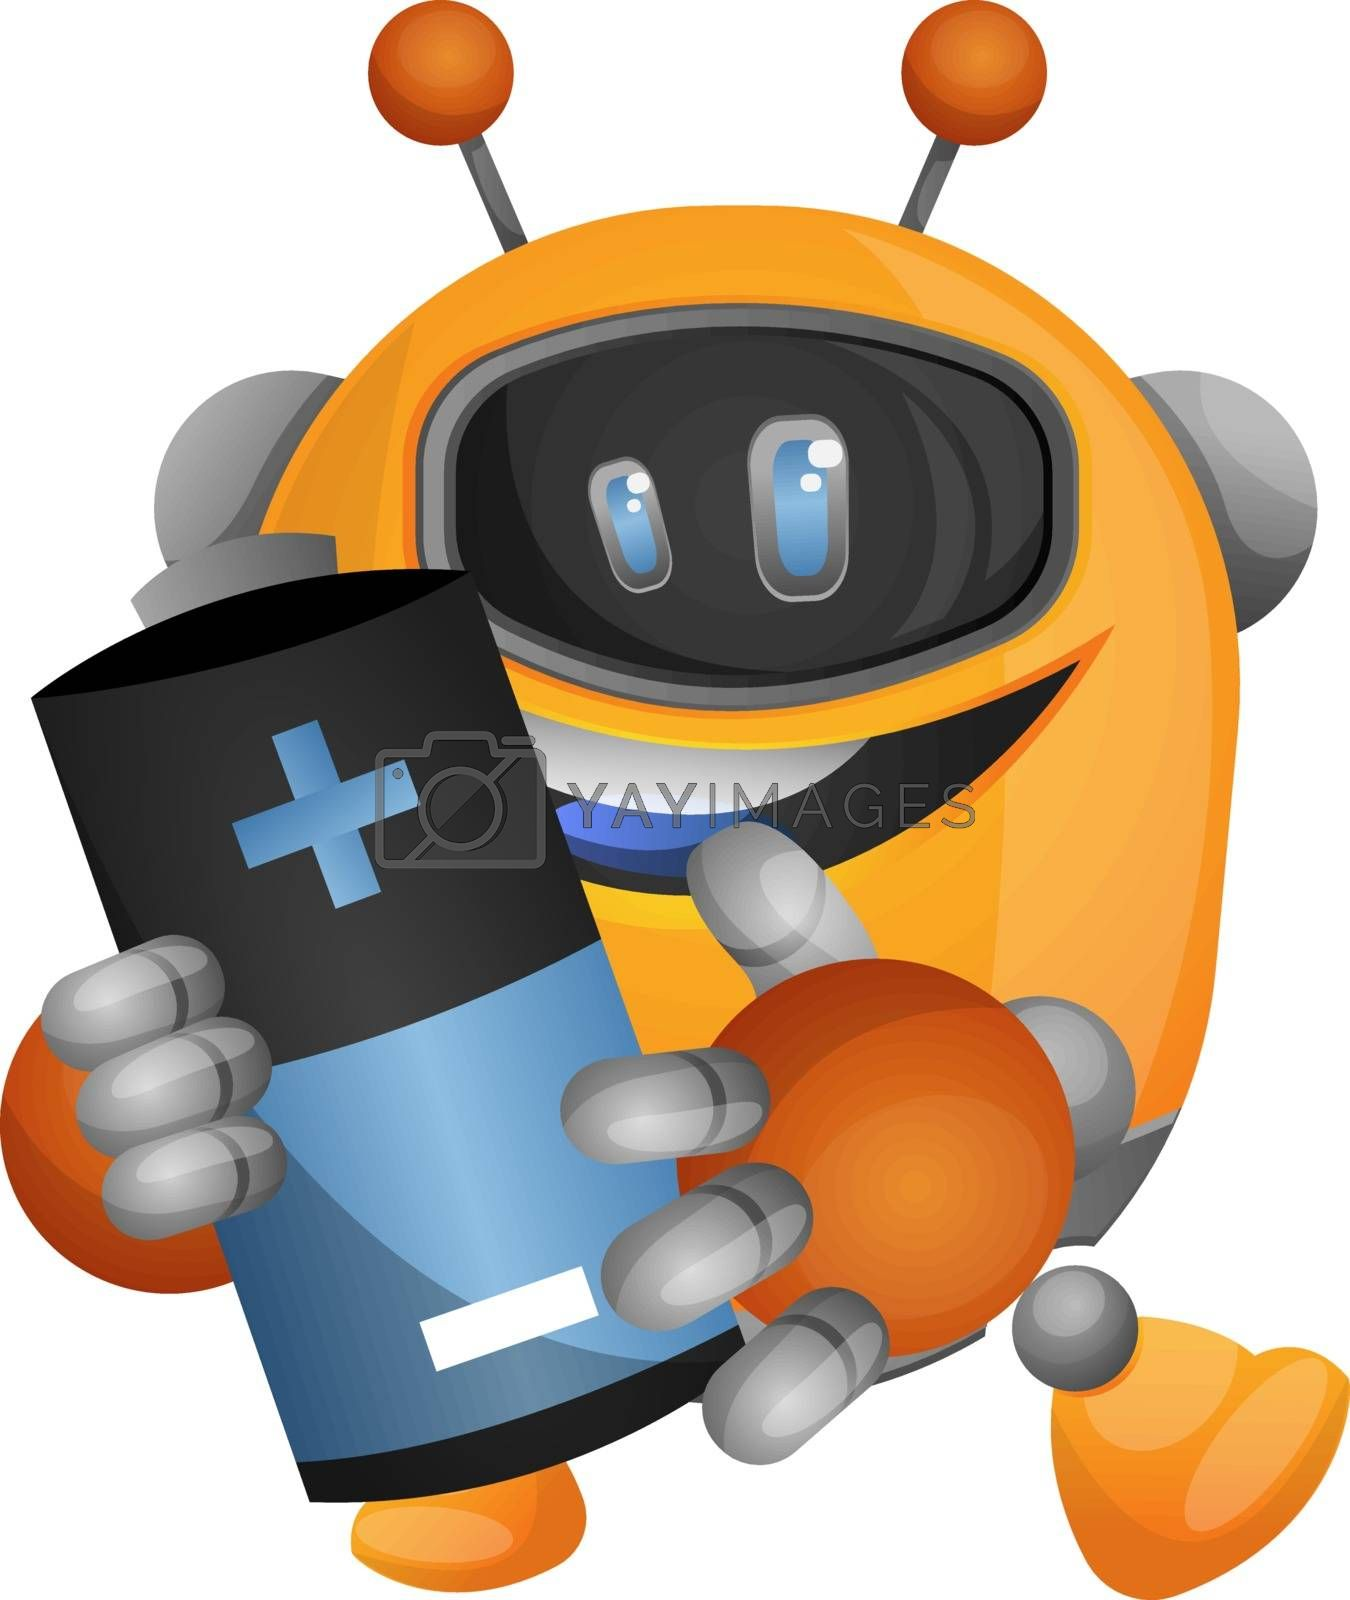 Royalty free image of Robot holding the battery illustration vector on white backgroun by Morphart